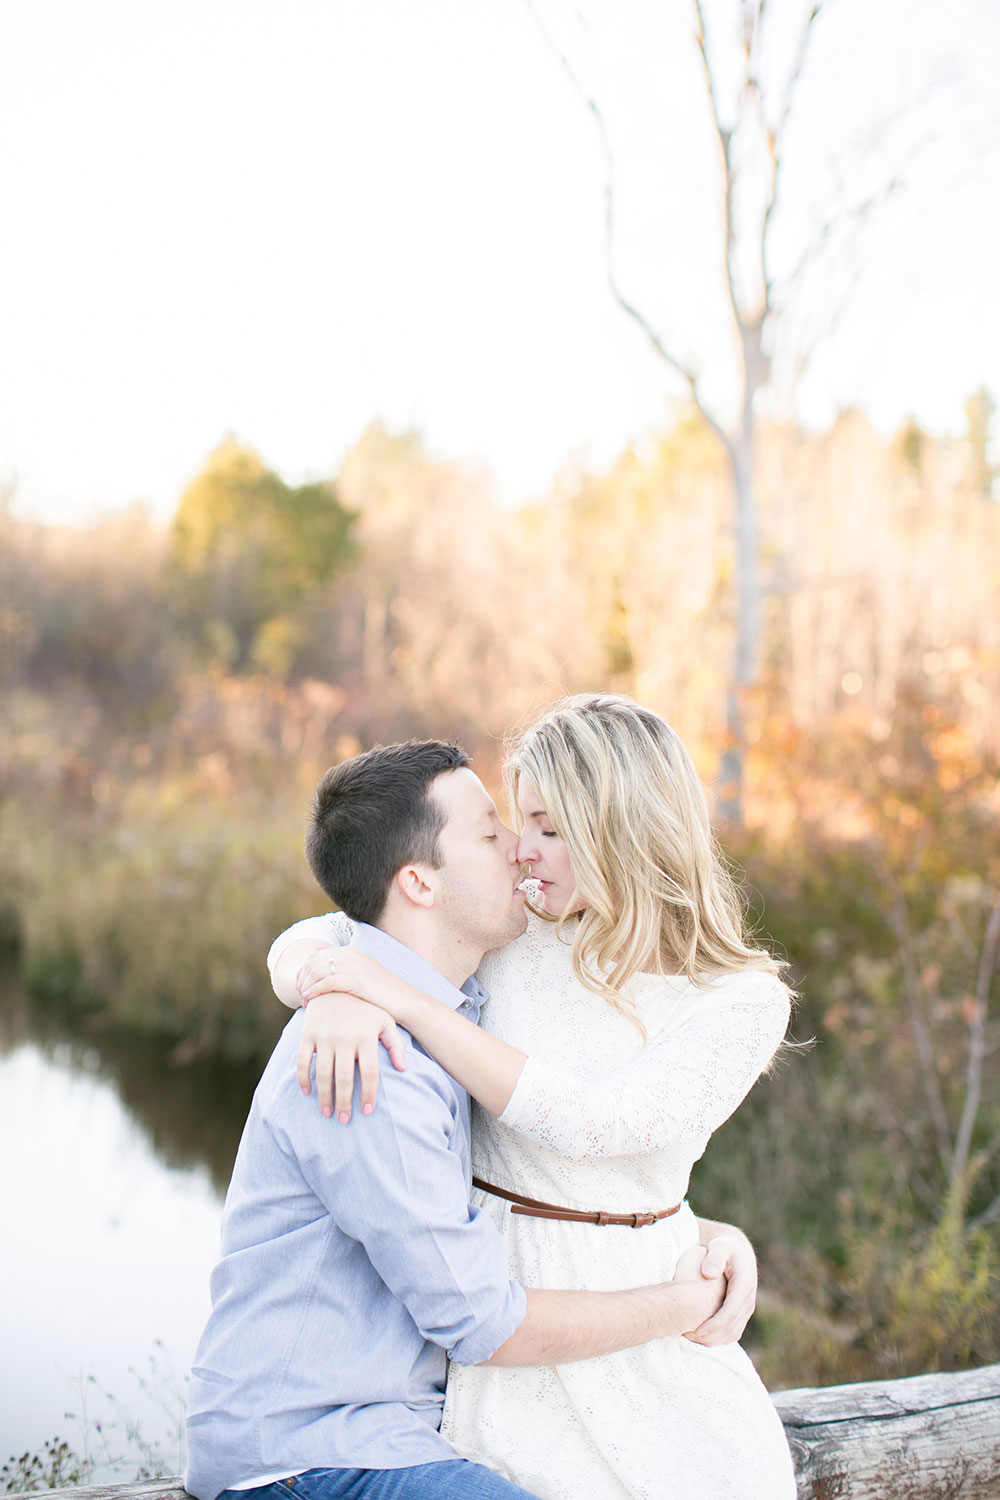 Albion-Hills-Conservation-Park-engagement-session-caledon-photo-by-philosophy-studios-eva-derrick-photography-011.jpg